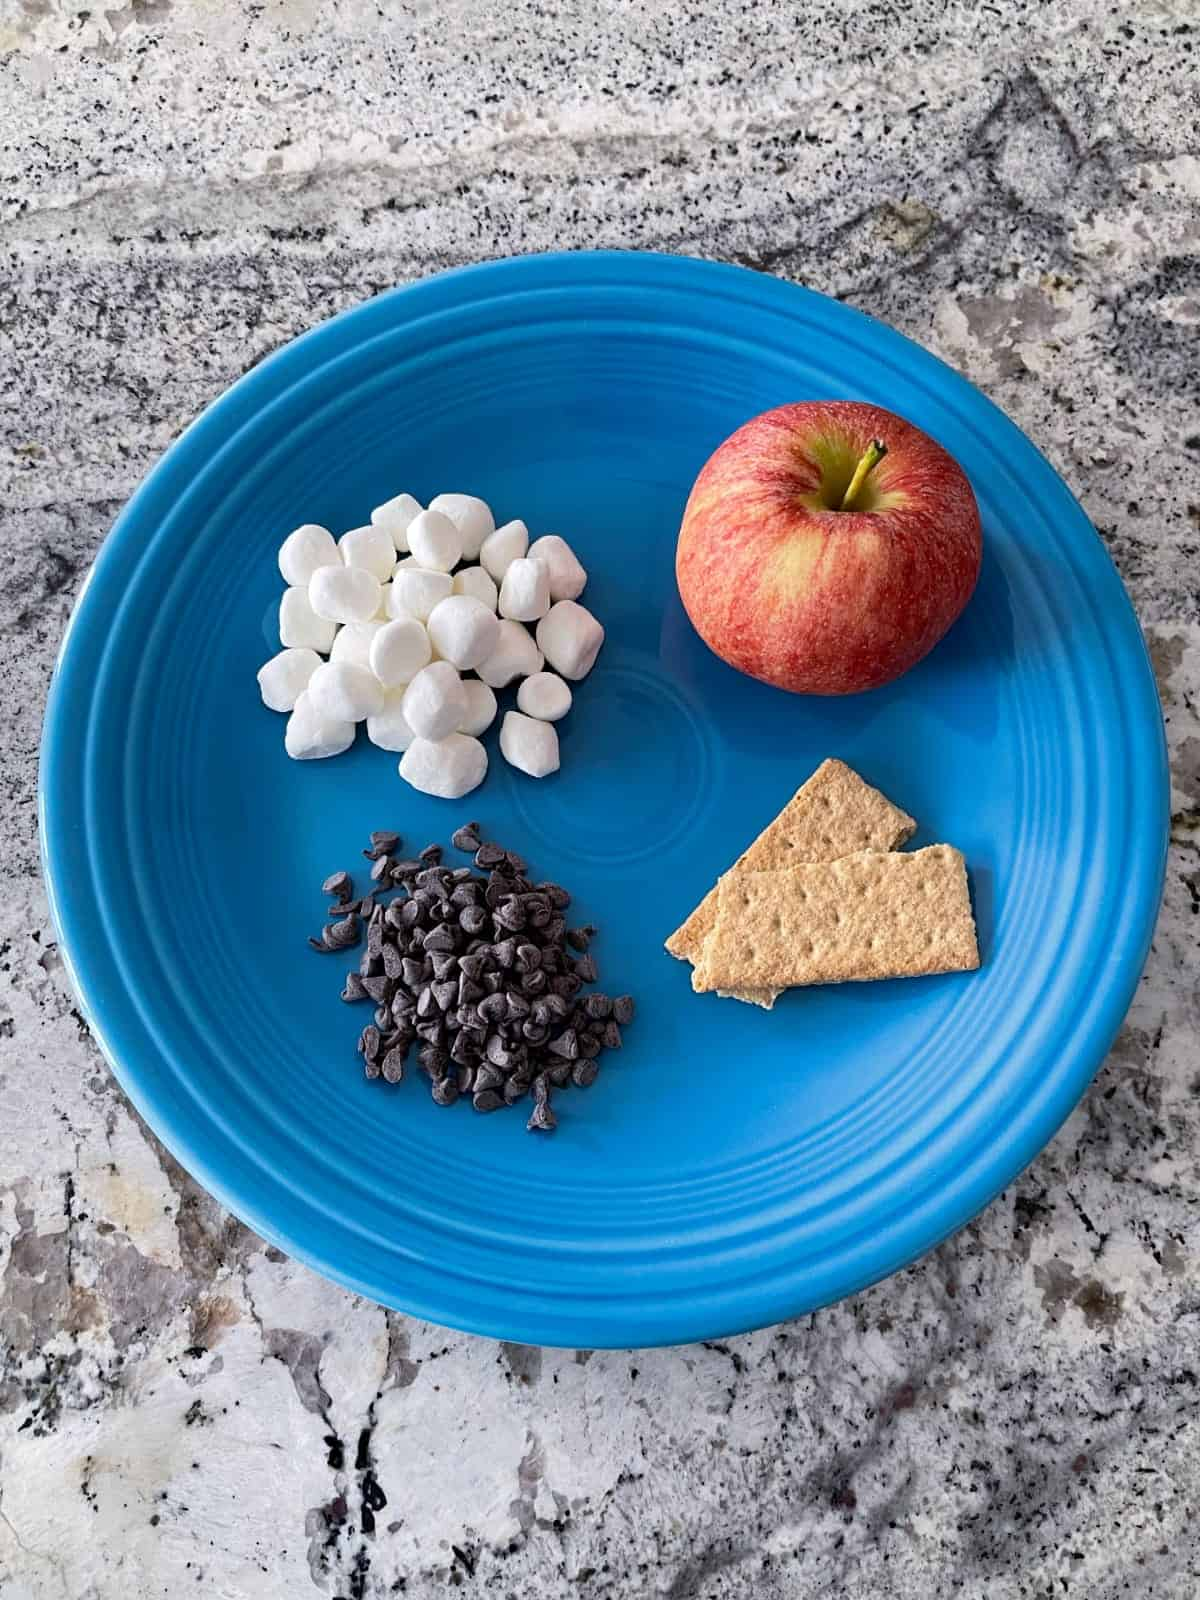 Mini marshmallows, chocolate chips, two graham crackers and whole apple on blue plate on granite.